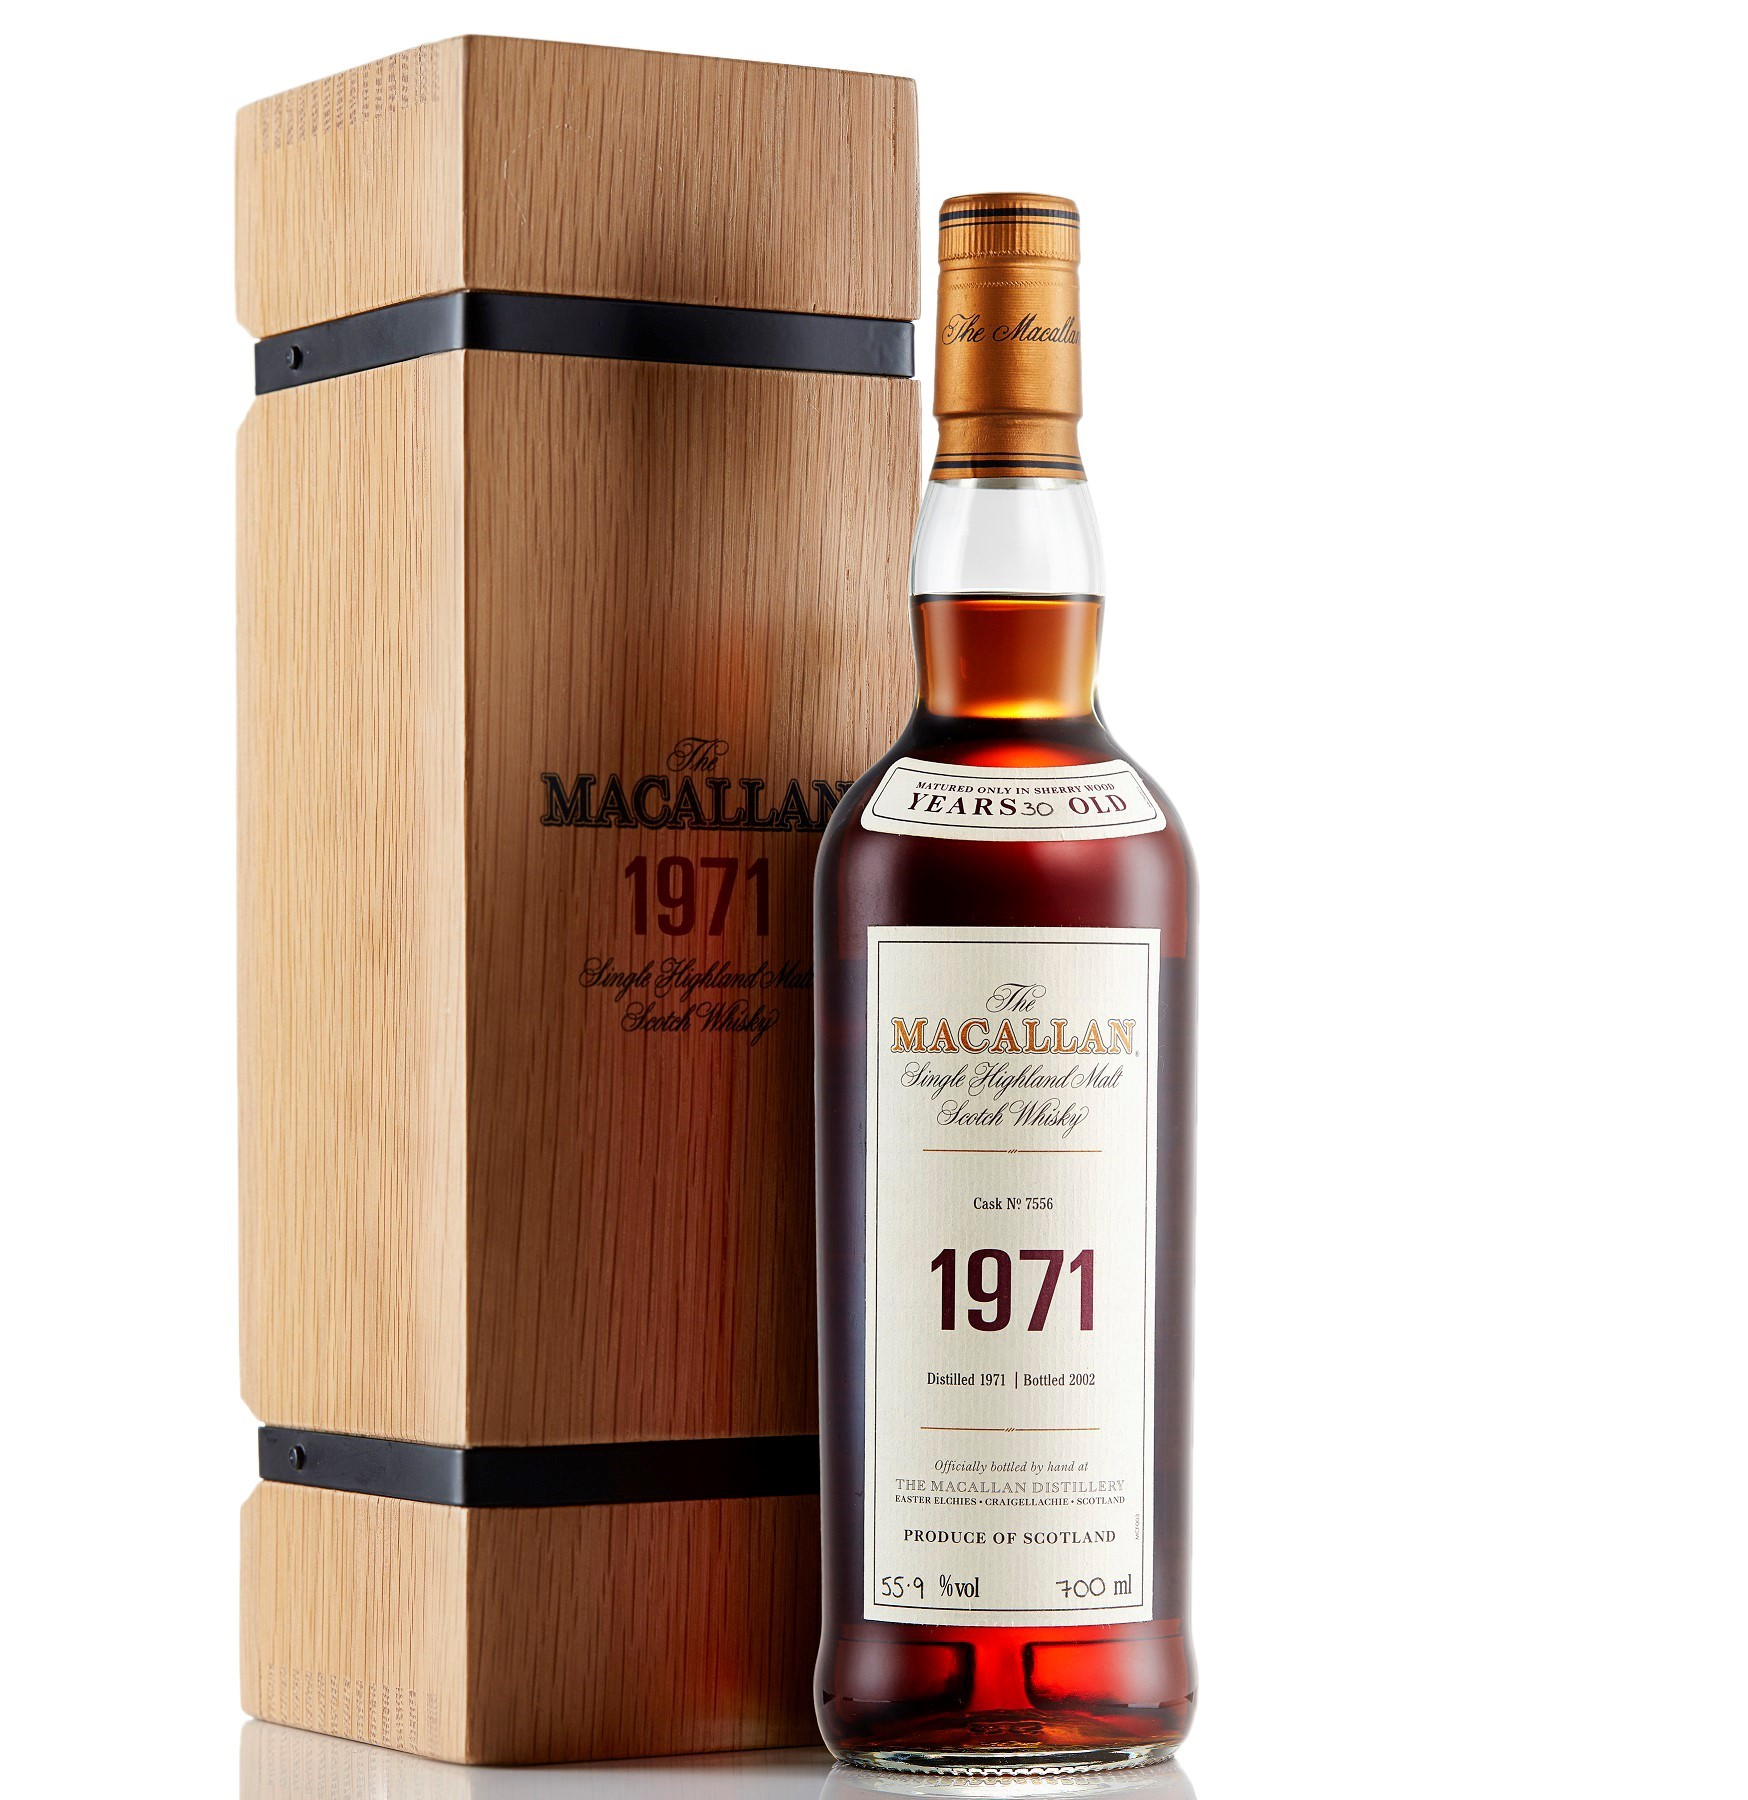 The Macallan Fine and Rare 1971 30 Year Old